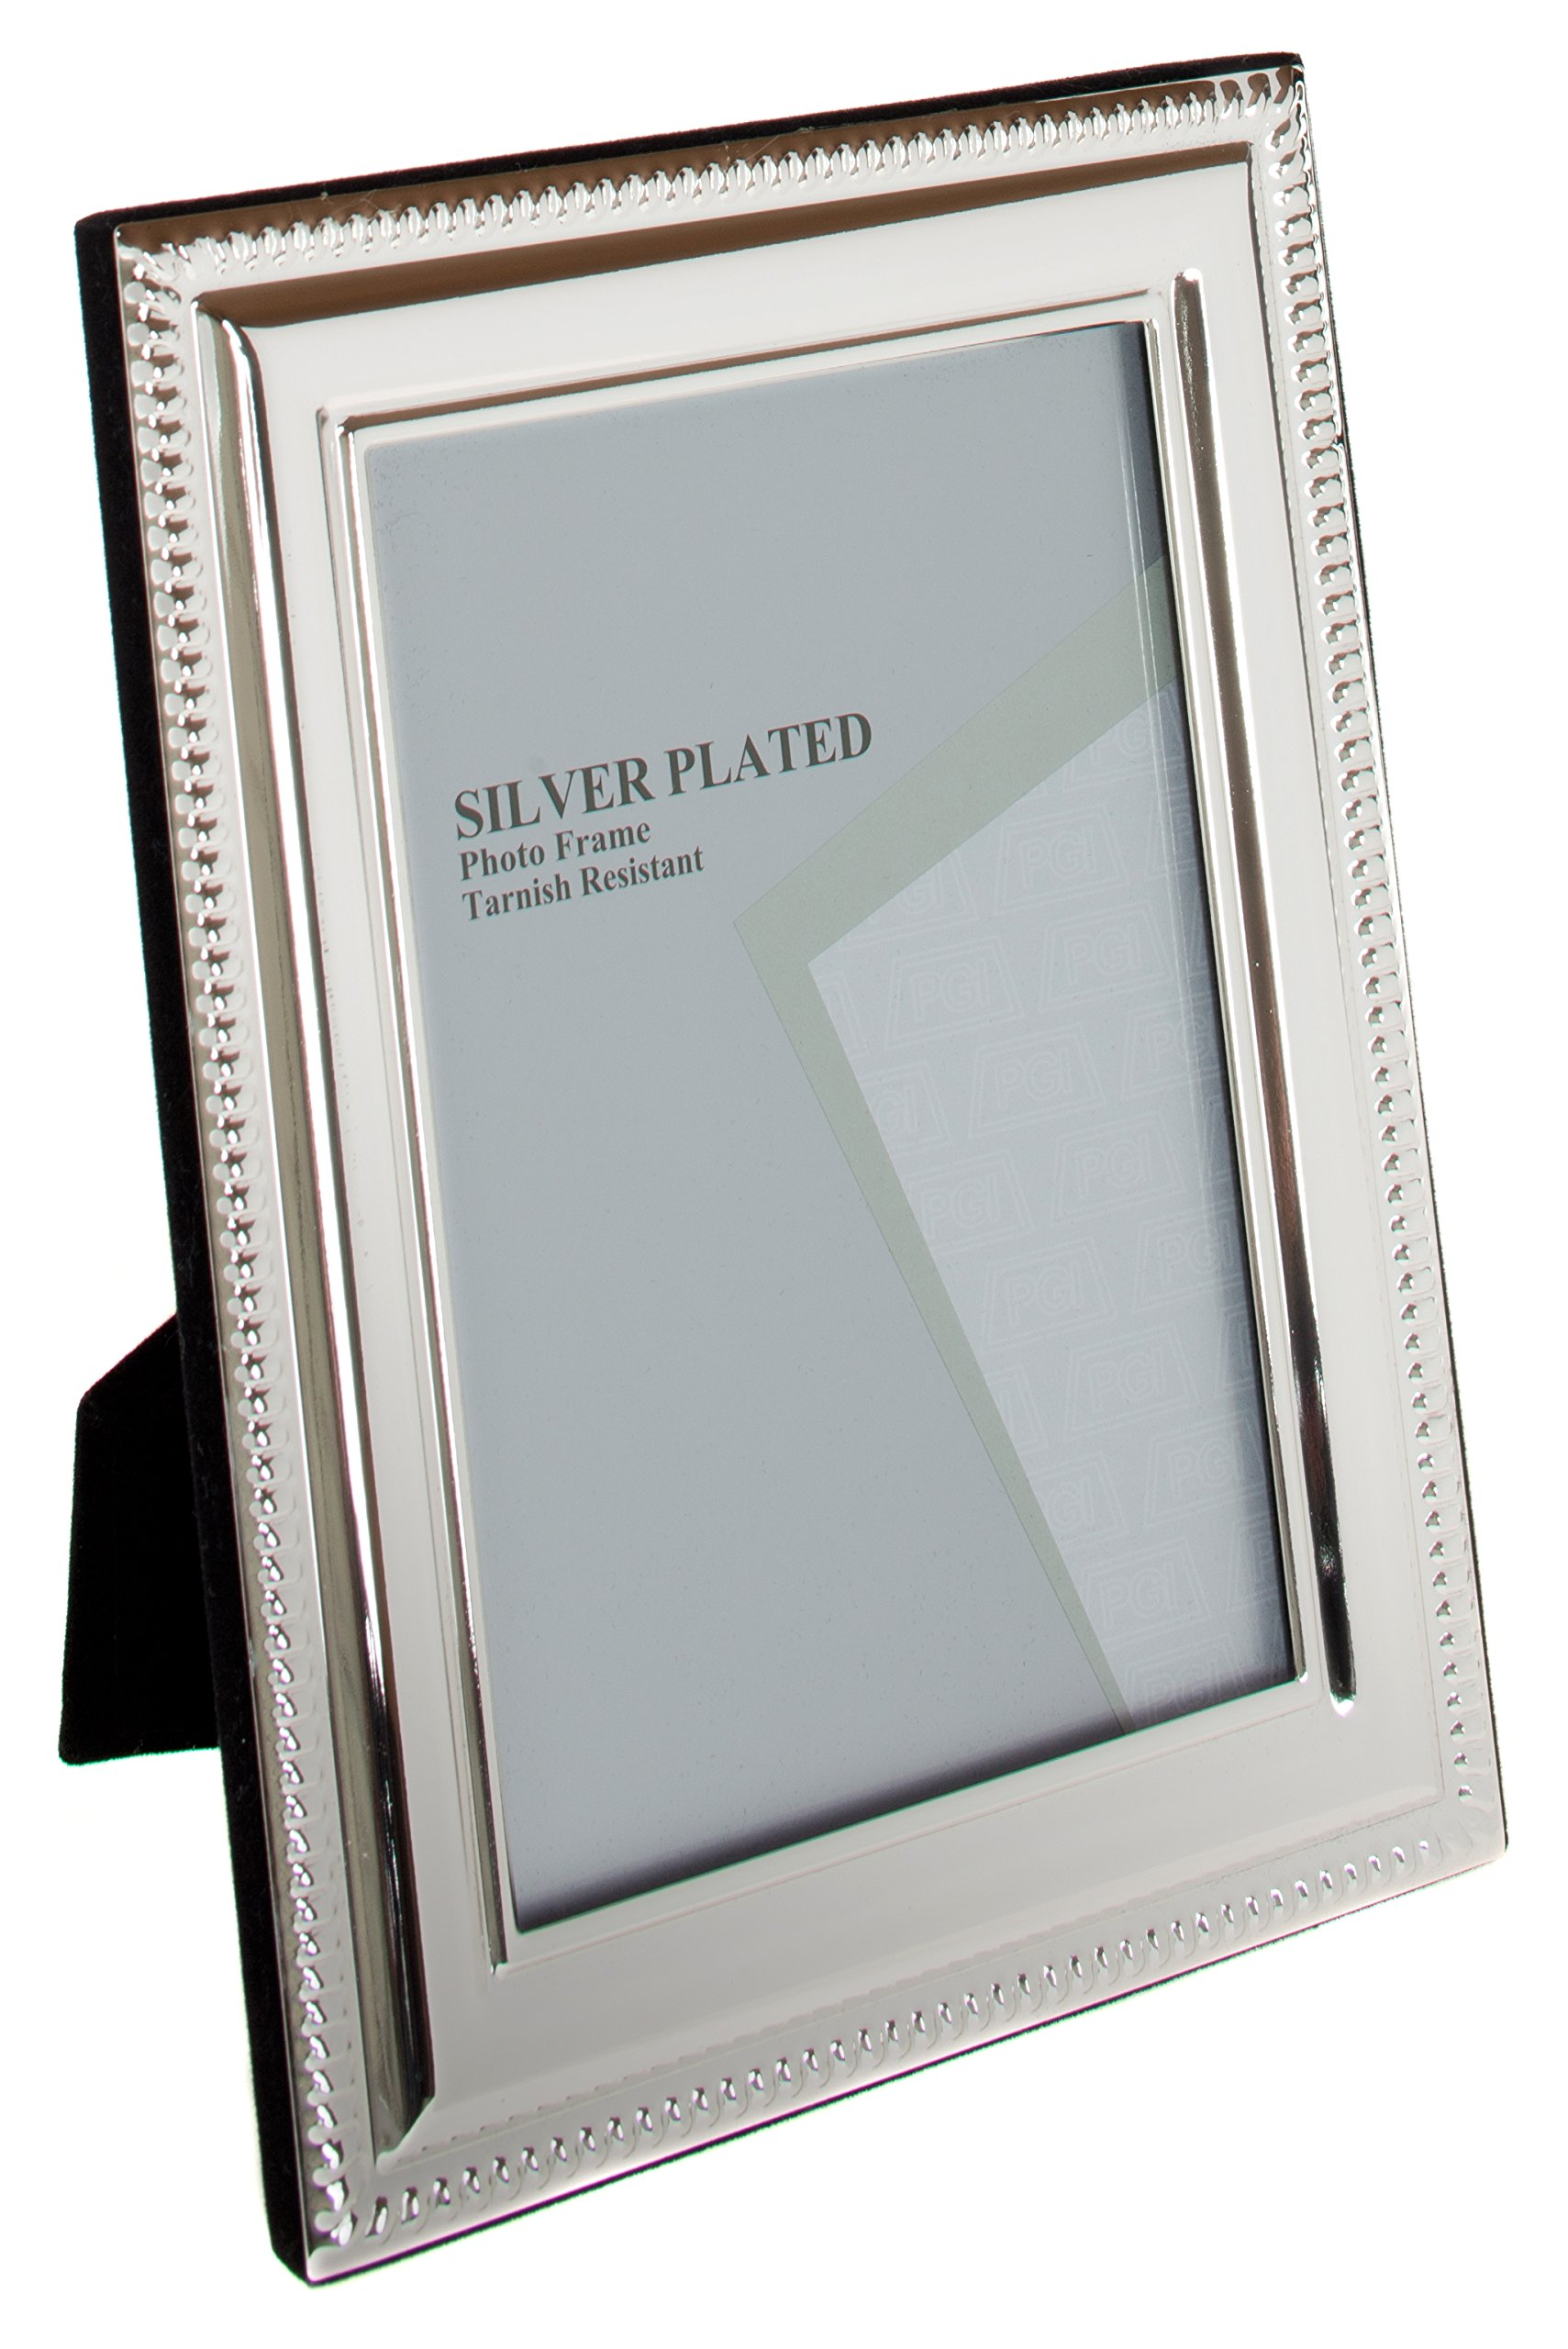 Viceni UNPF20-80 Silver Plated Bead Photo Frame, 8 by 10 Inch, 8 x 10-Inch by Viceni